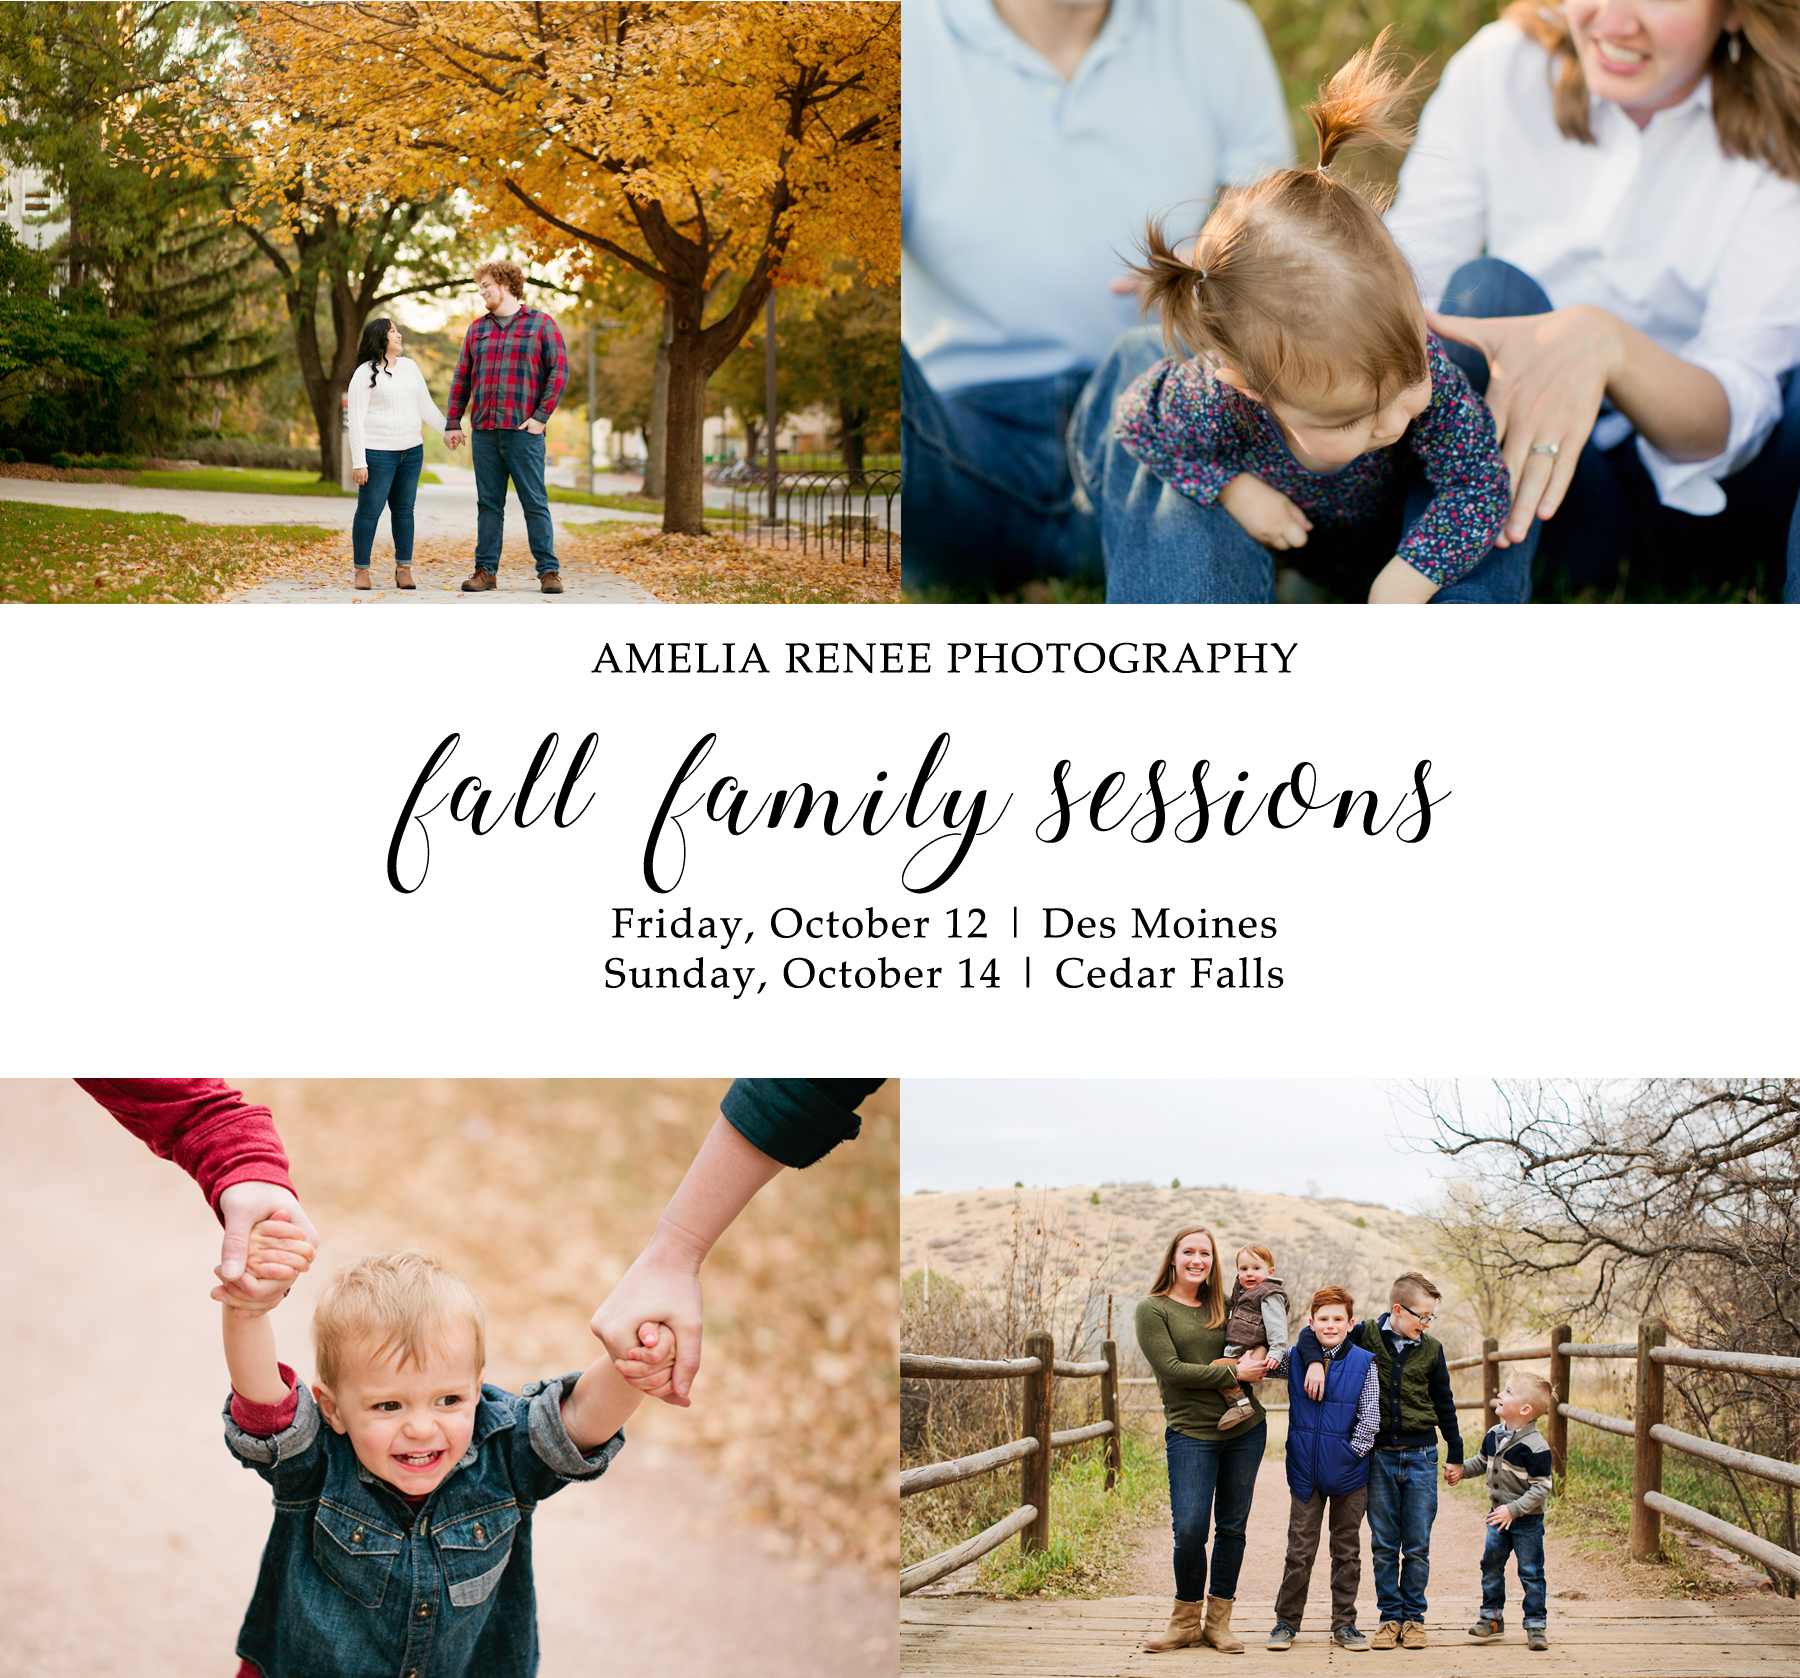 fall iowa family photographer mini-session pricing and location